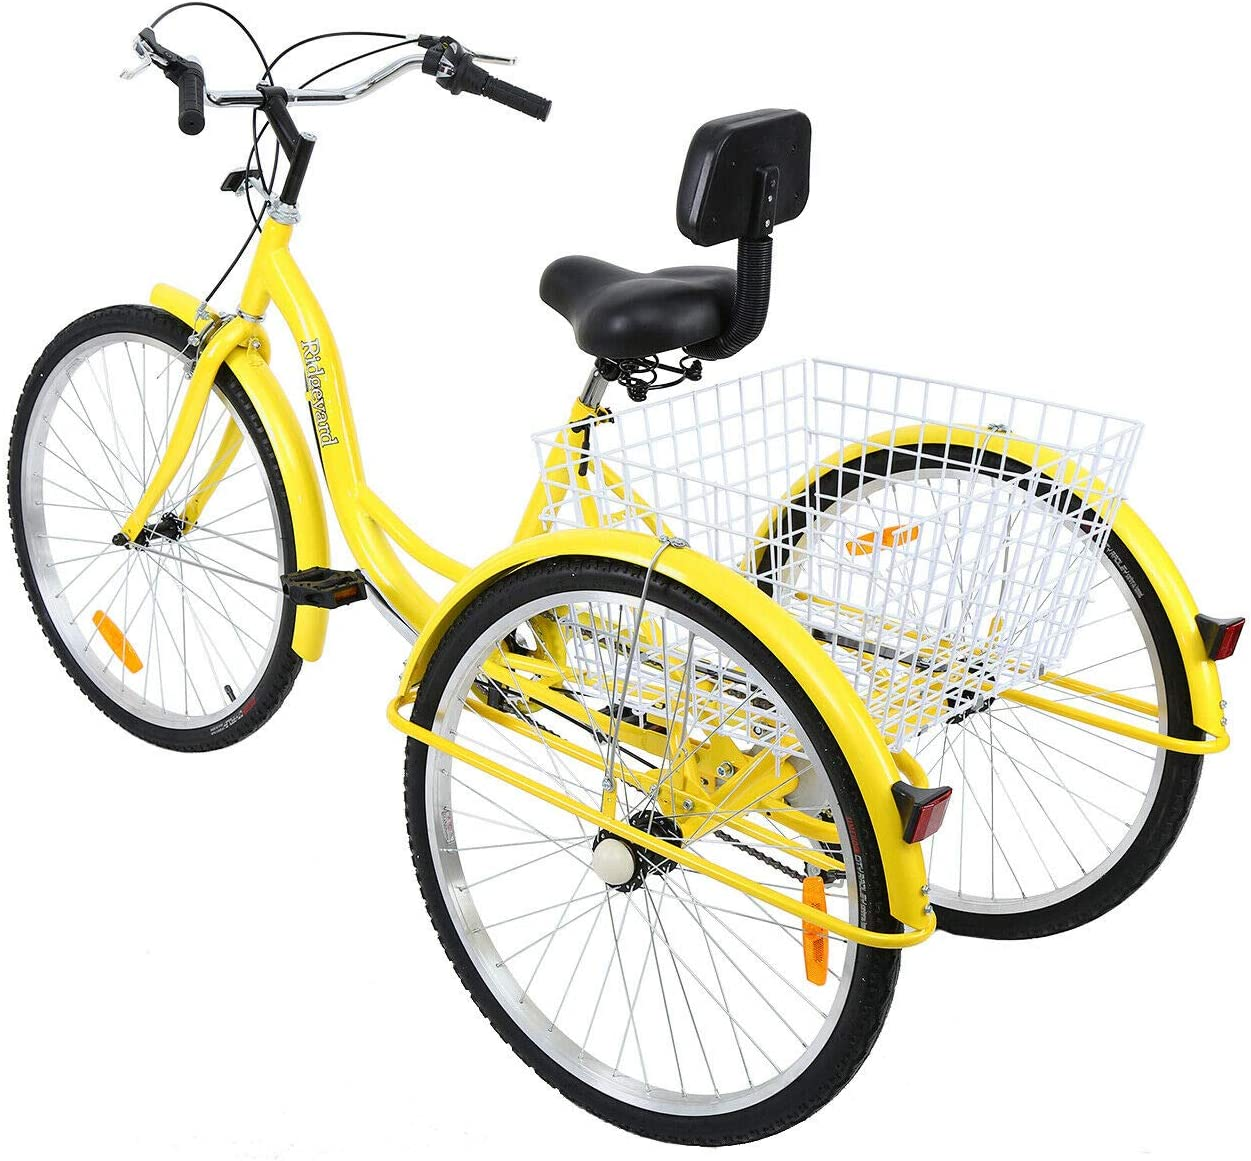 Iglobalbuy 26 Inch Adult Tricycles Series 7 Speed 3 Wheel Bikes for Adult Tricycle Trike Cruise Bike Large Size Basket for Recreation Shopping,Exercise Mens Womens Bike